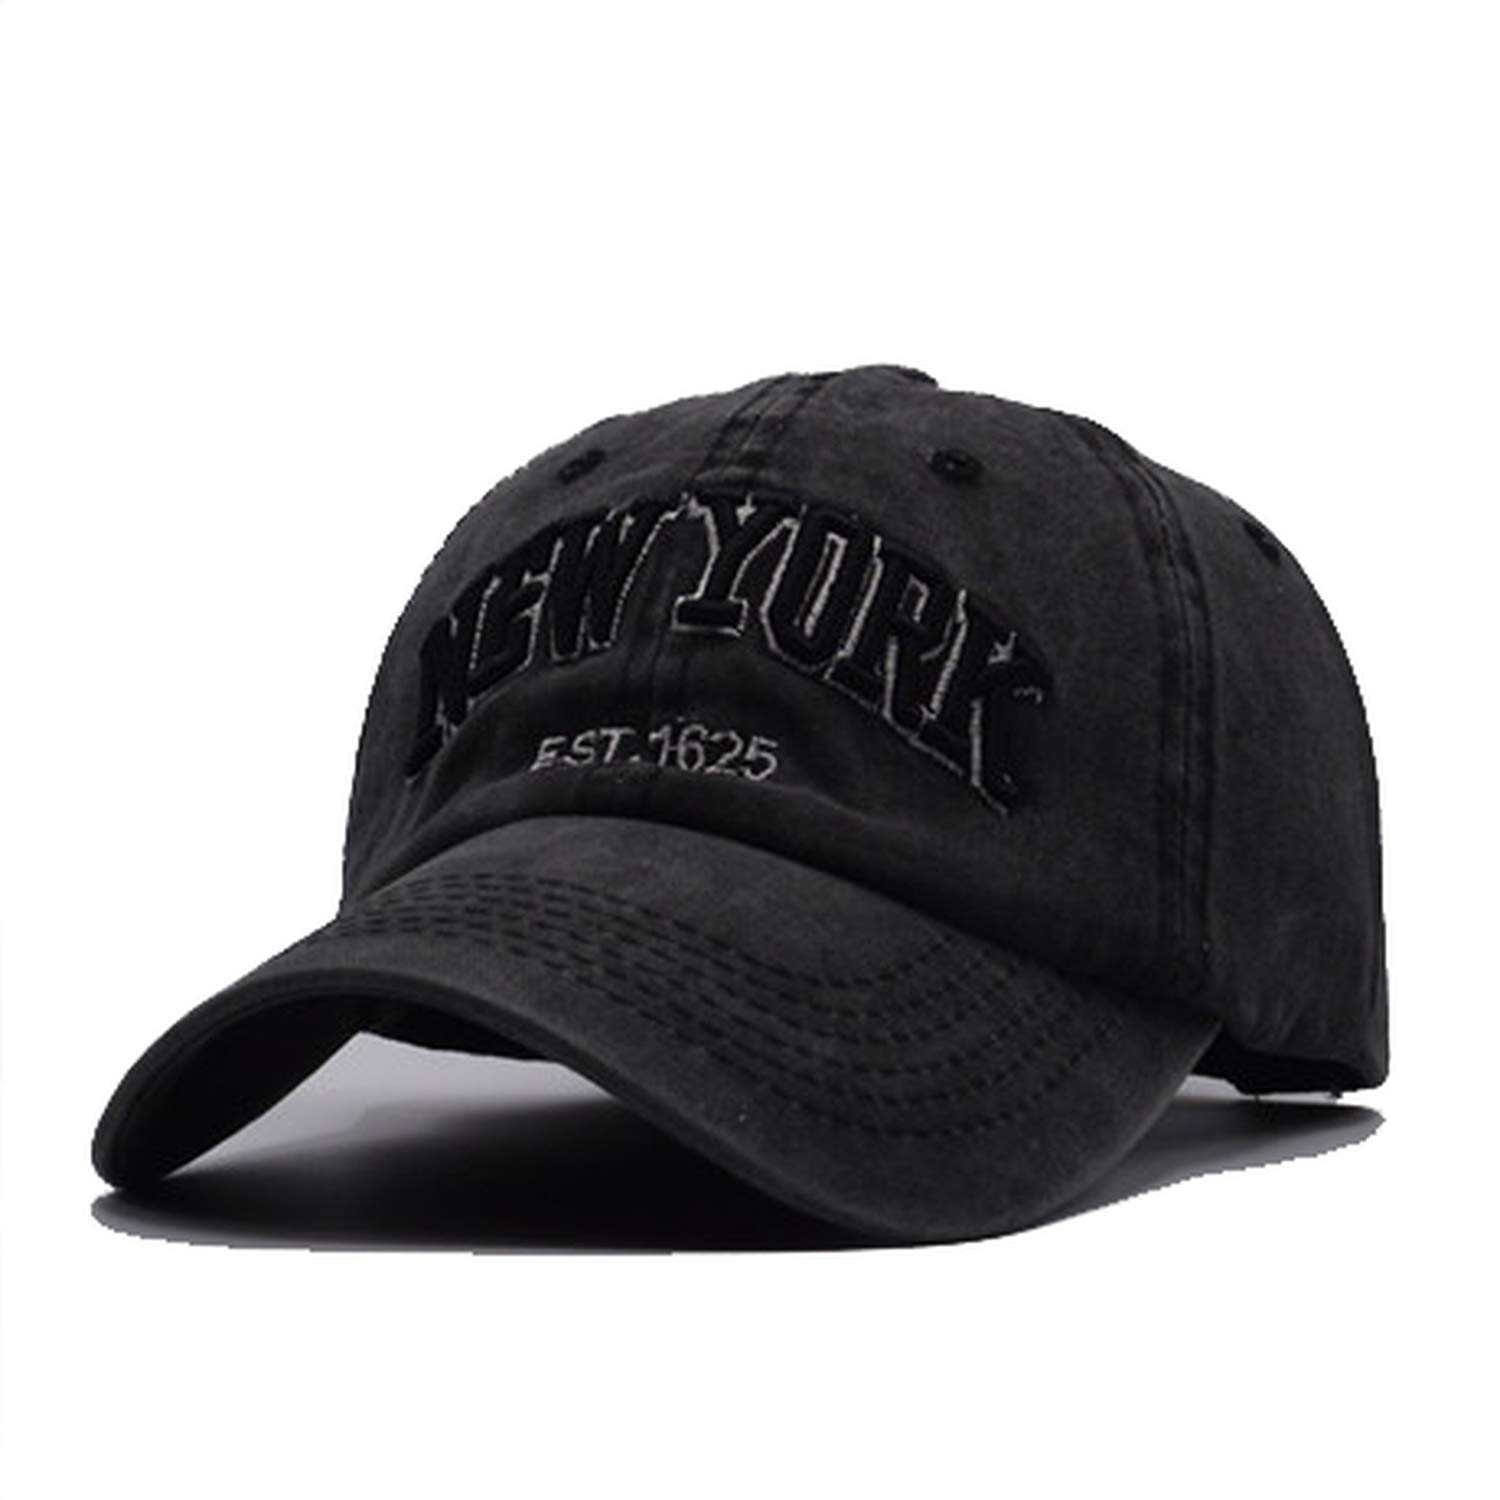 Yijay 100/% Cotton Baseball Cap for Women Men Vintage dad Hats New York Embroidery Letter Outdoor Sports caps